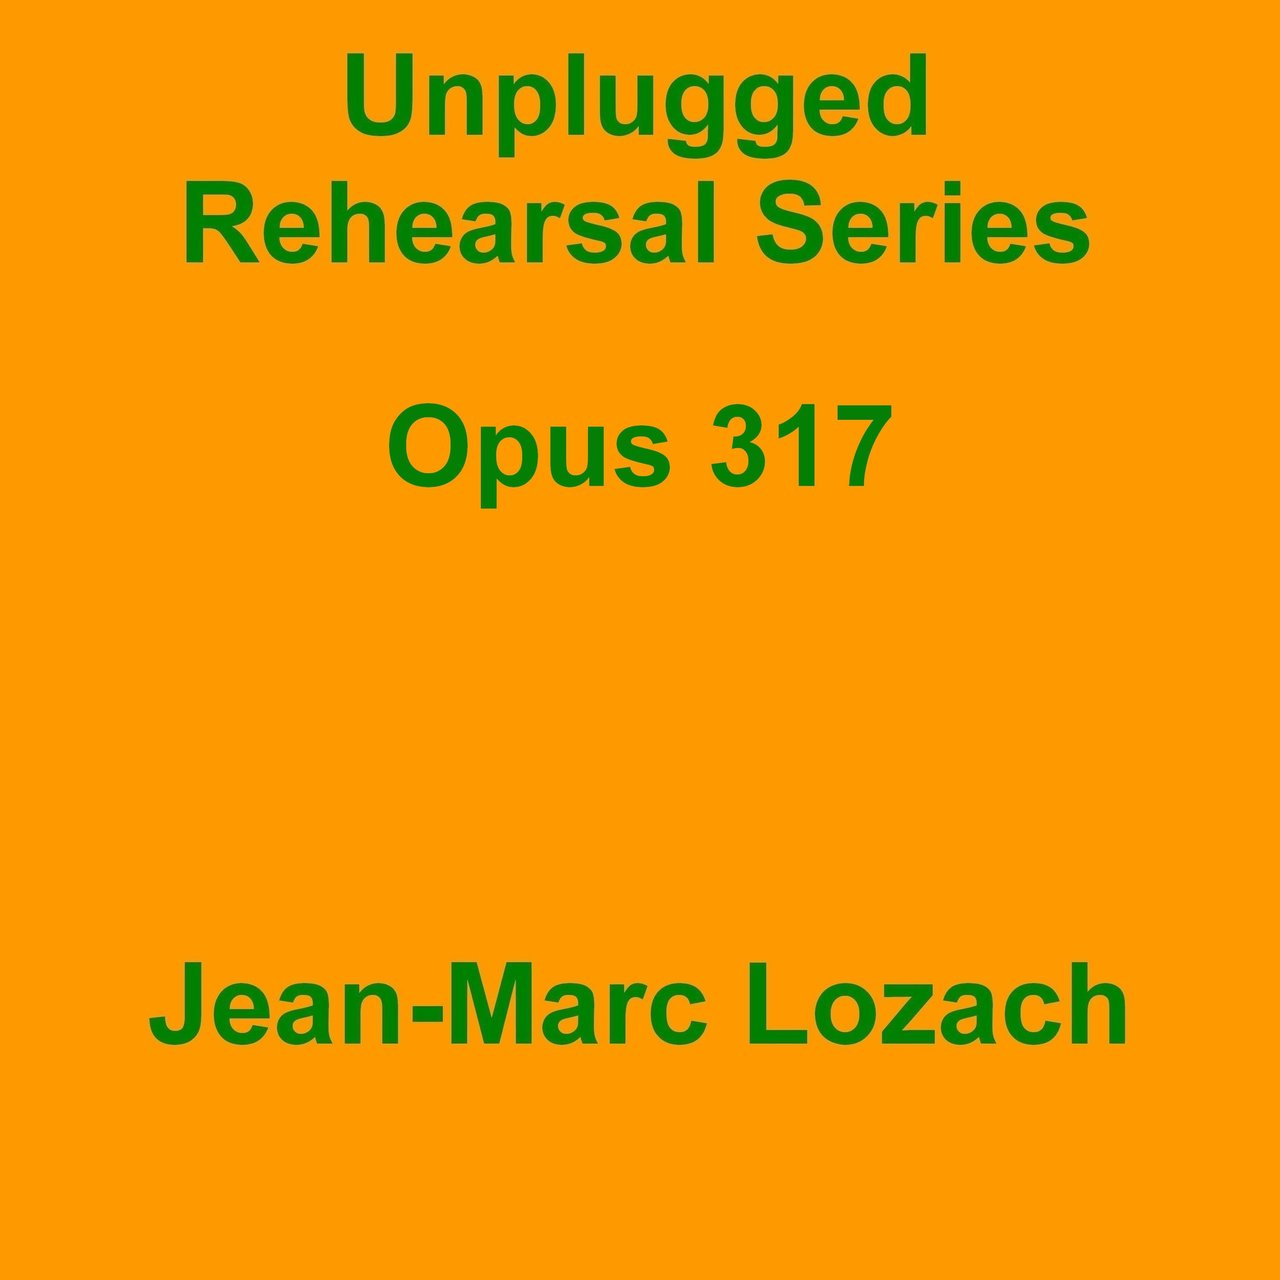 Unplugged Rehearsal Series Opus 317